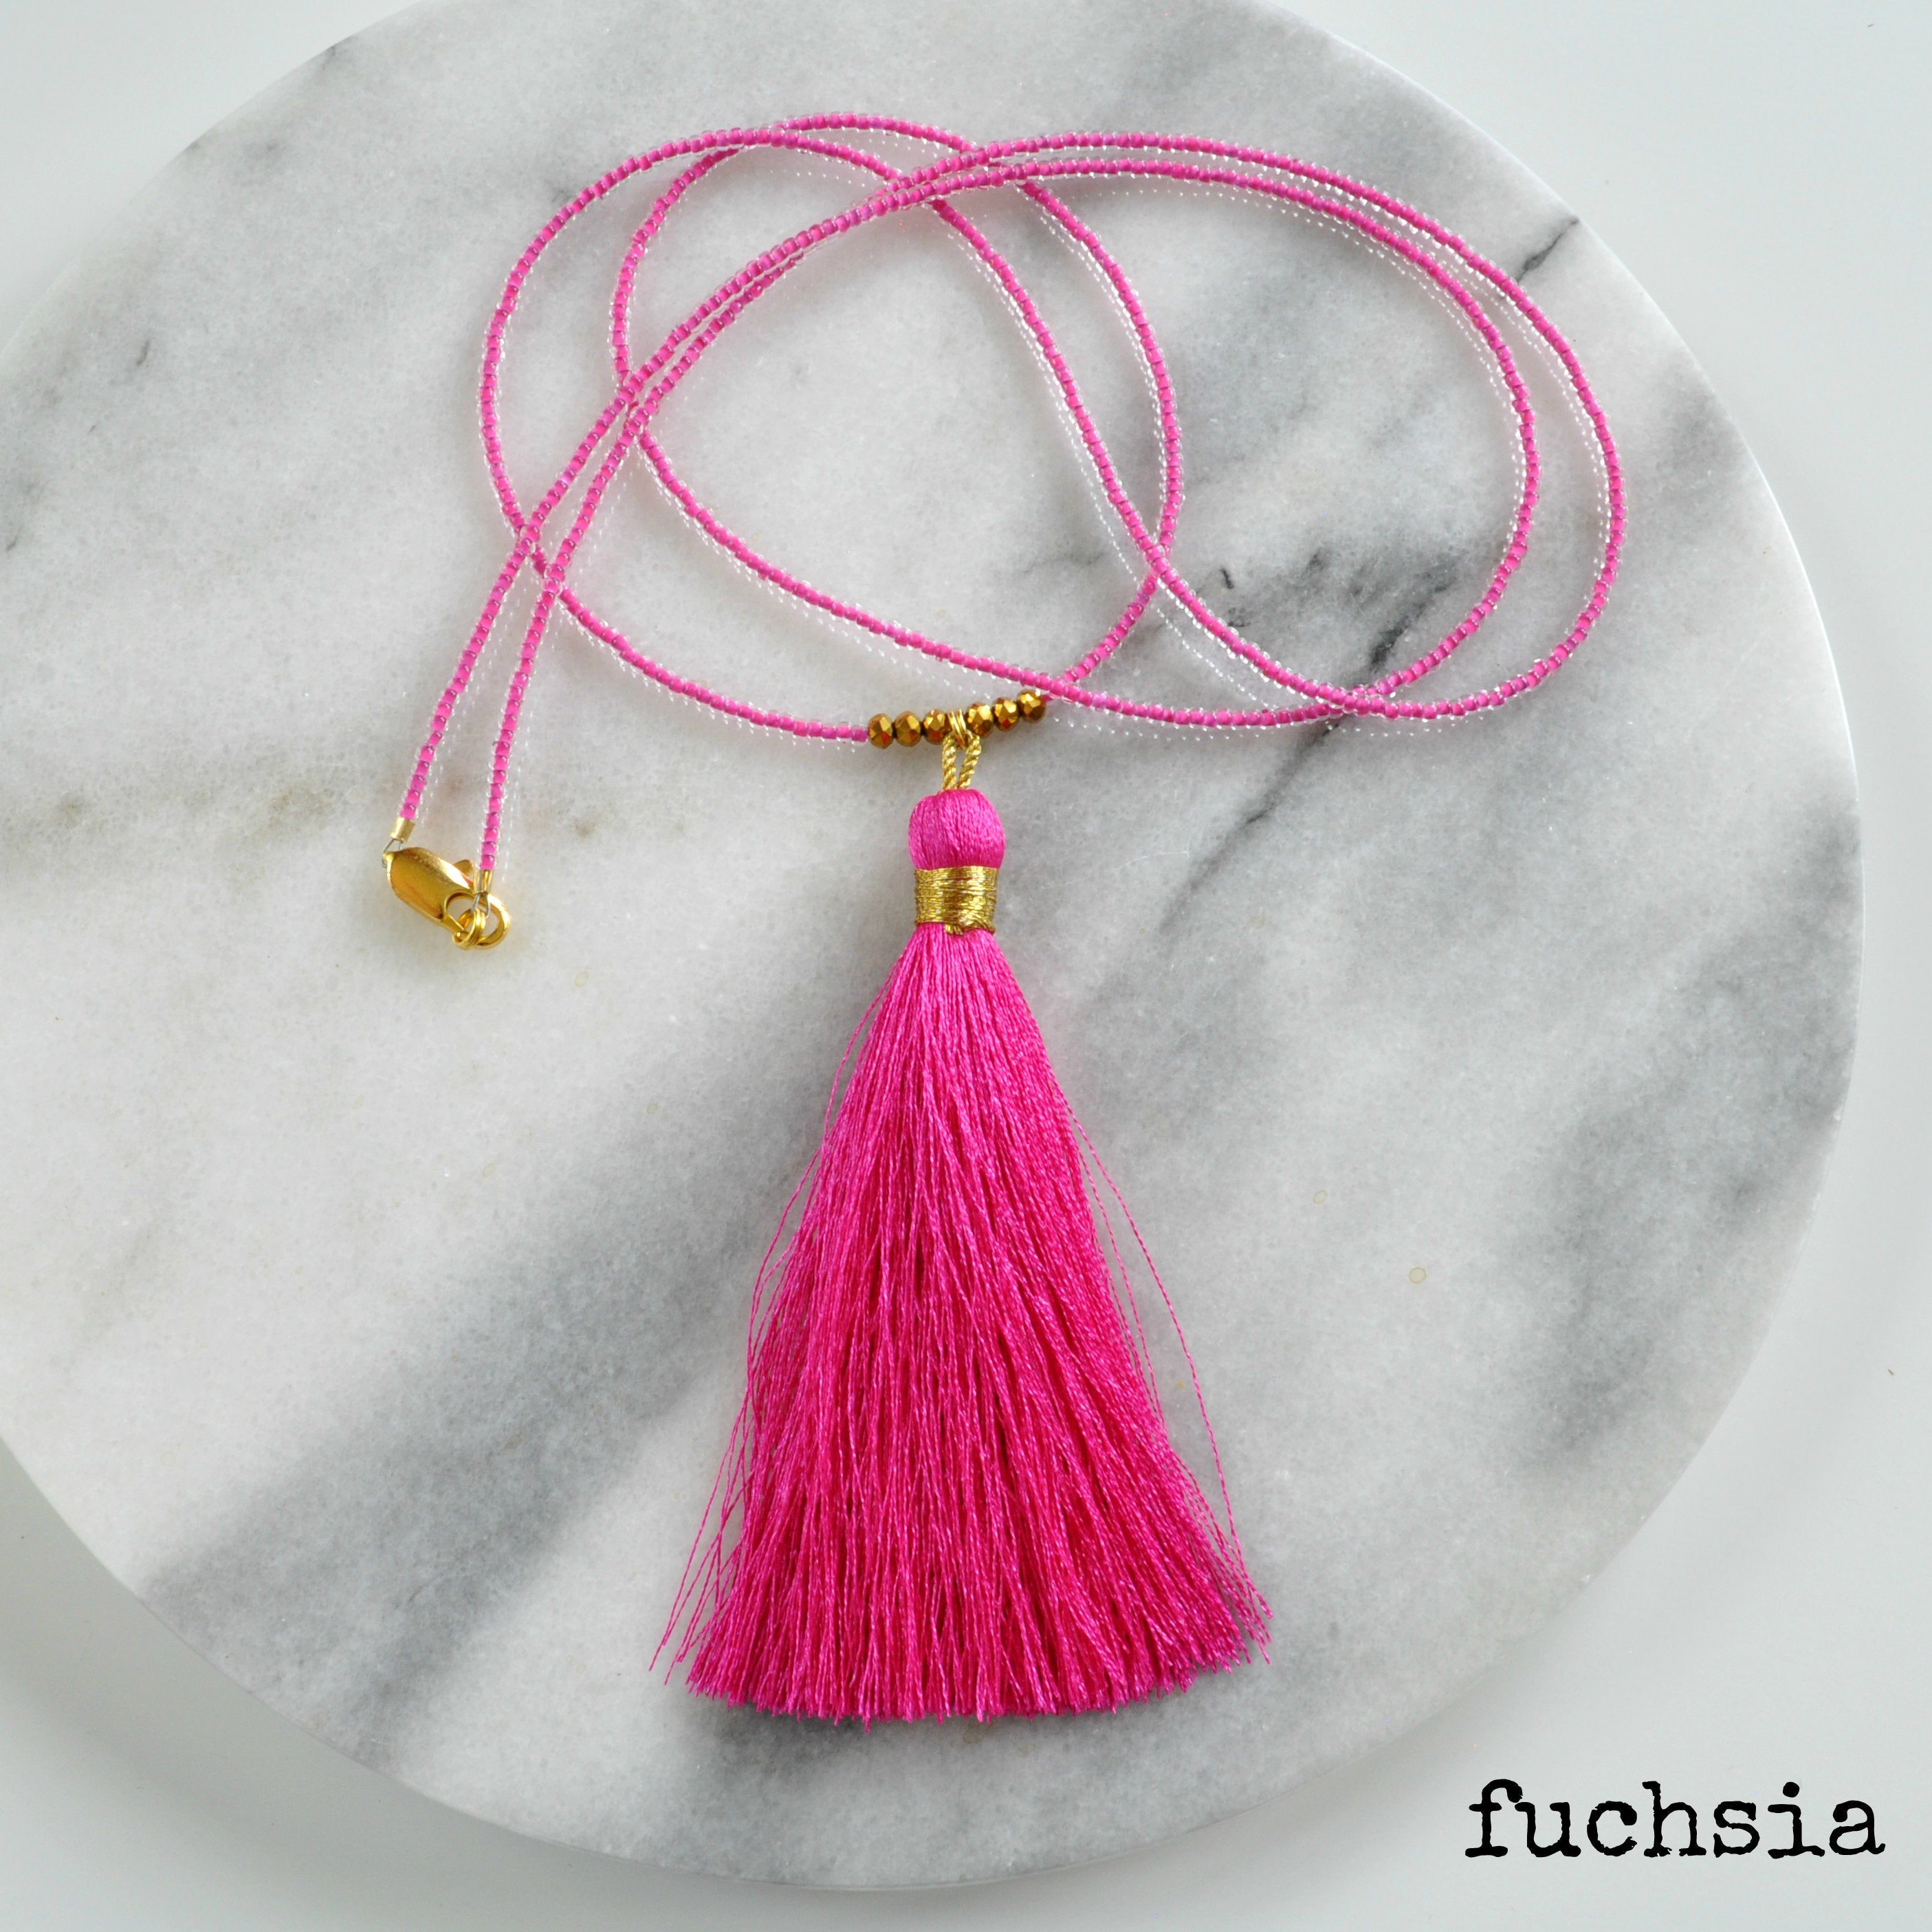 Libby & Smee Beaded Tassel Necklace in  Fuchsia, still life labeled